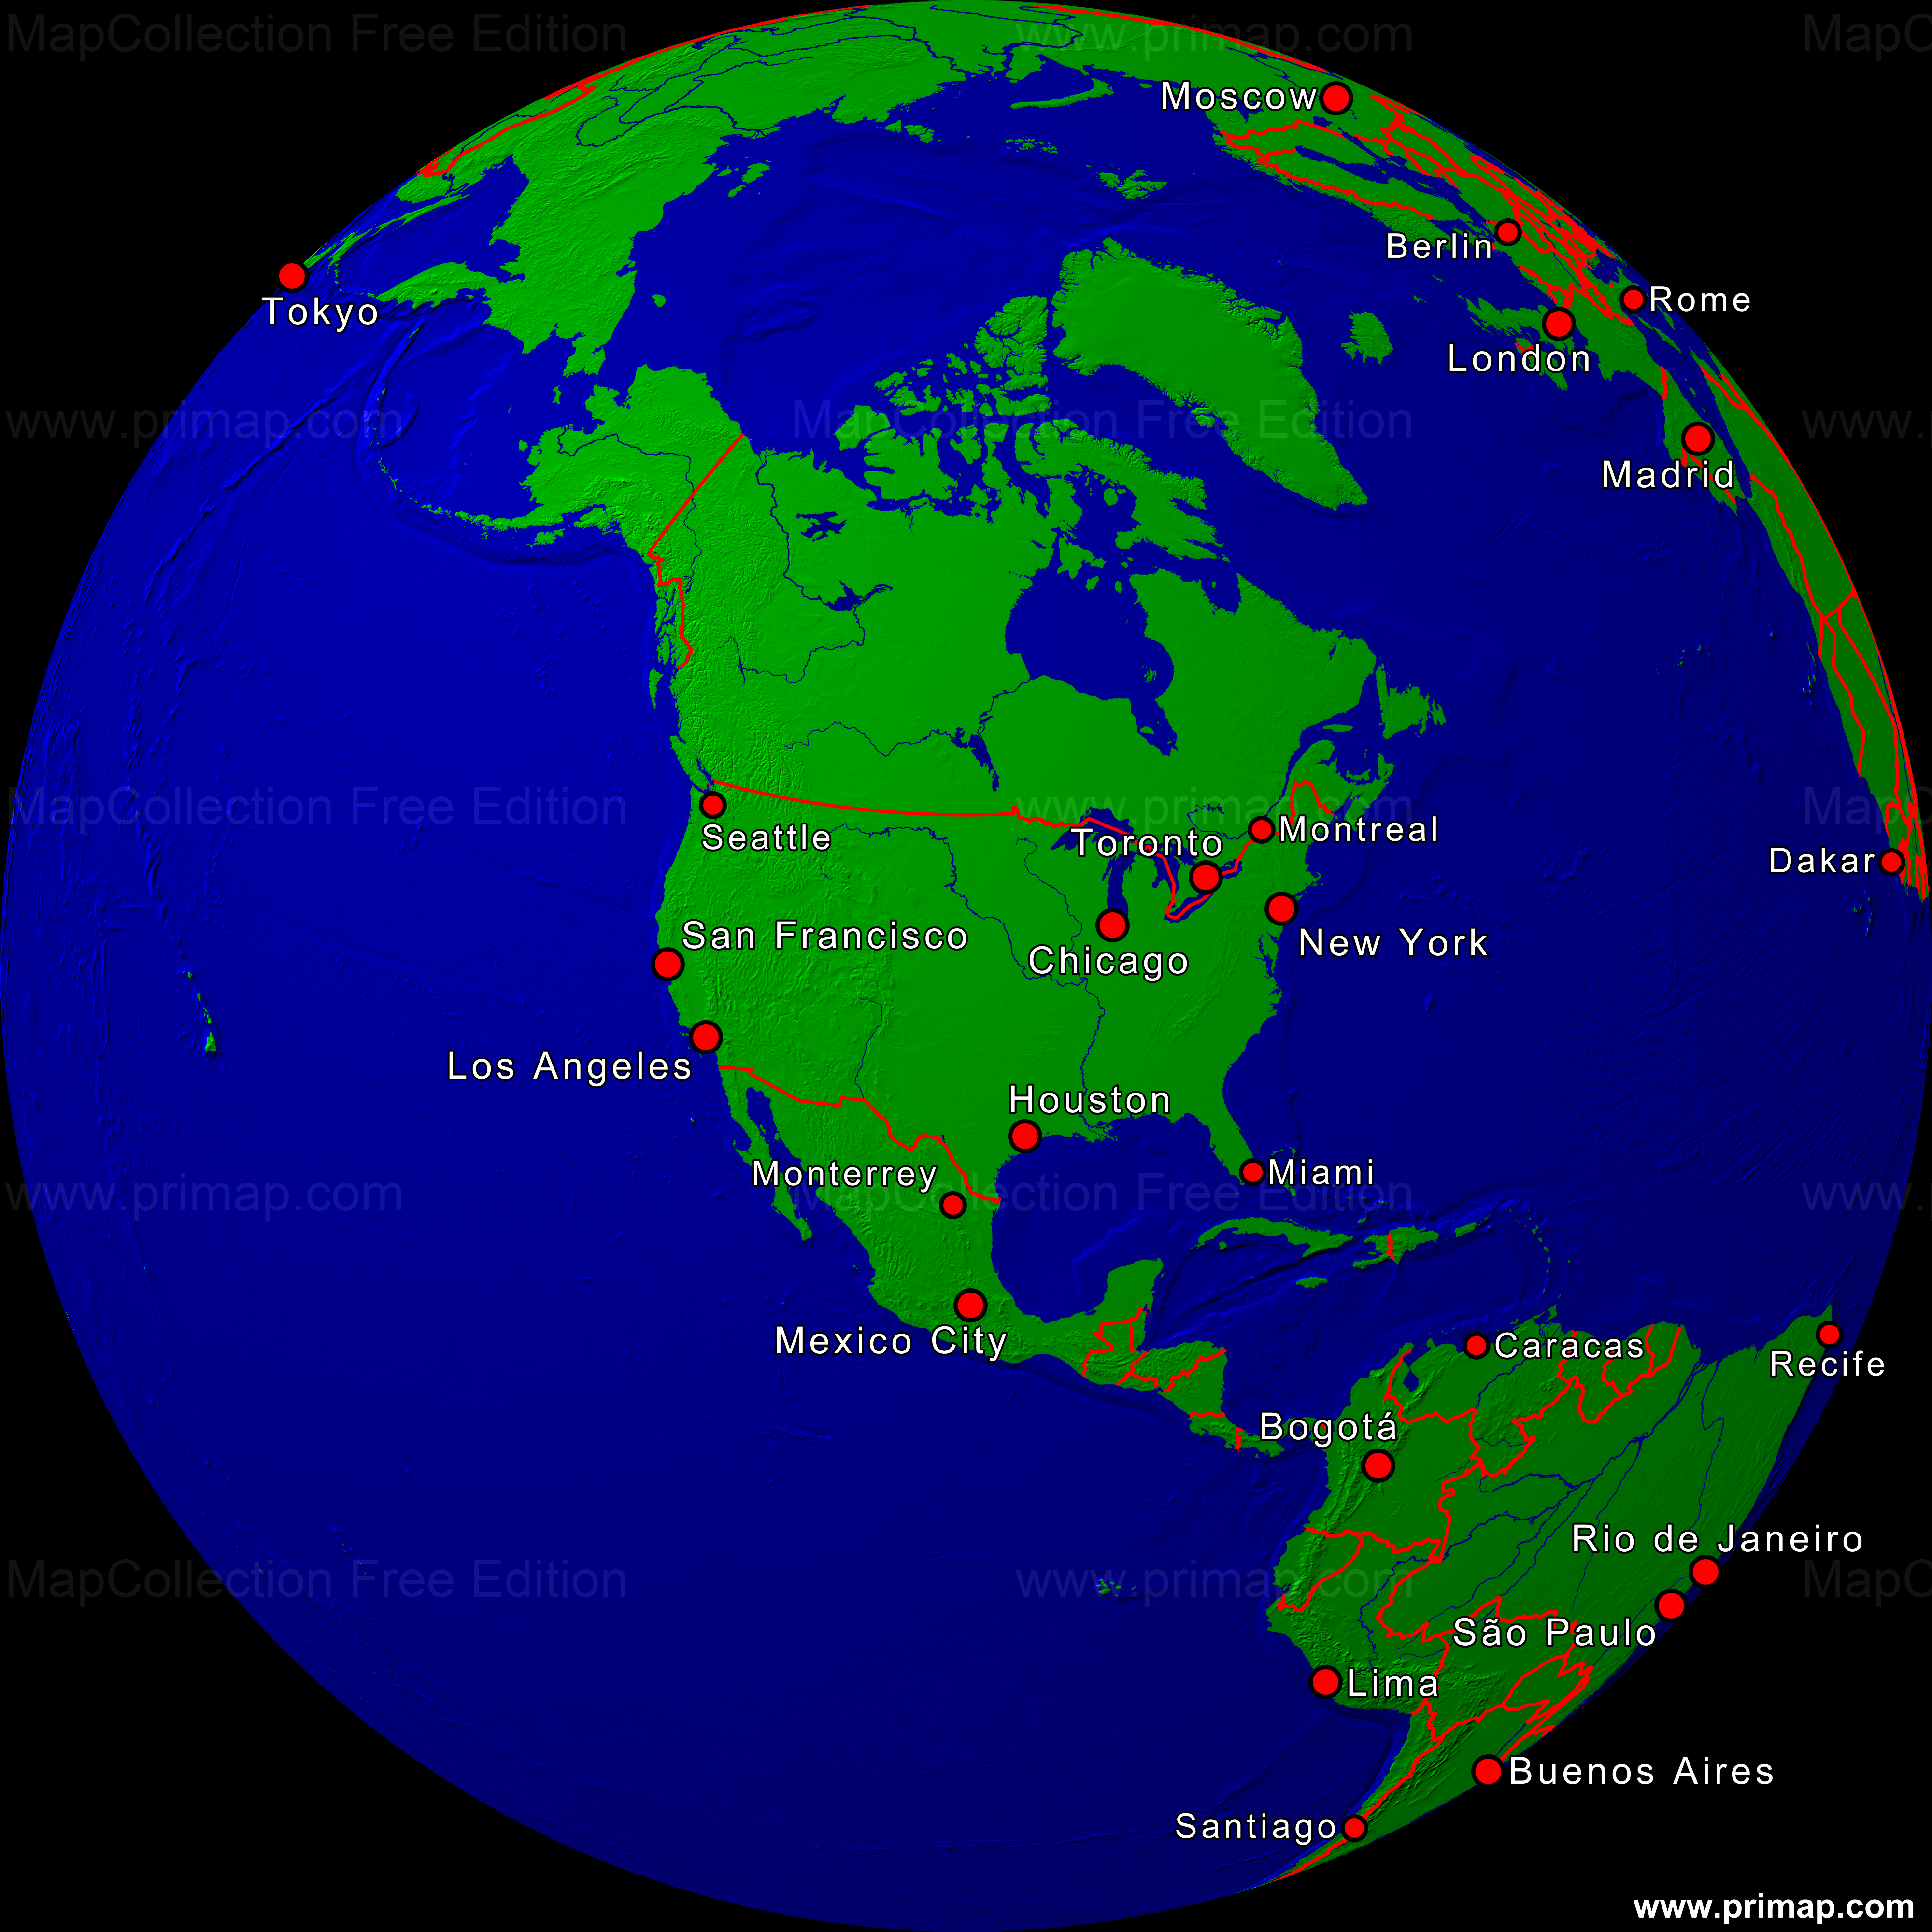 Show A Map Of The Usa.Primap World Maps